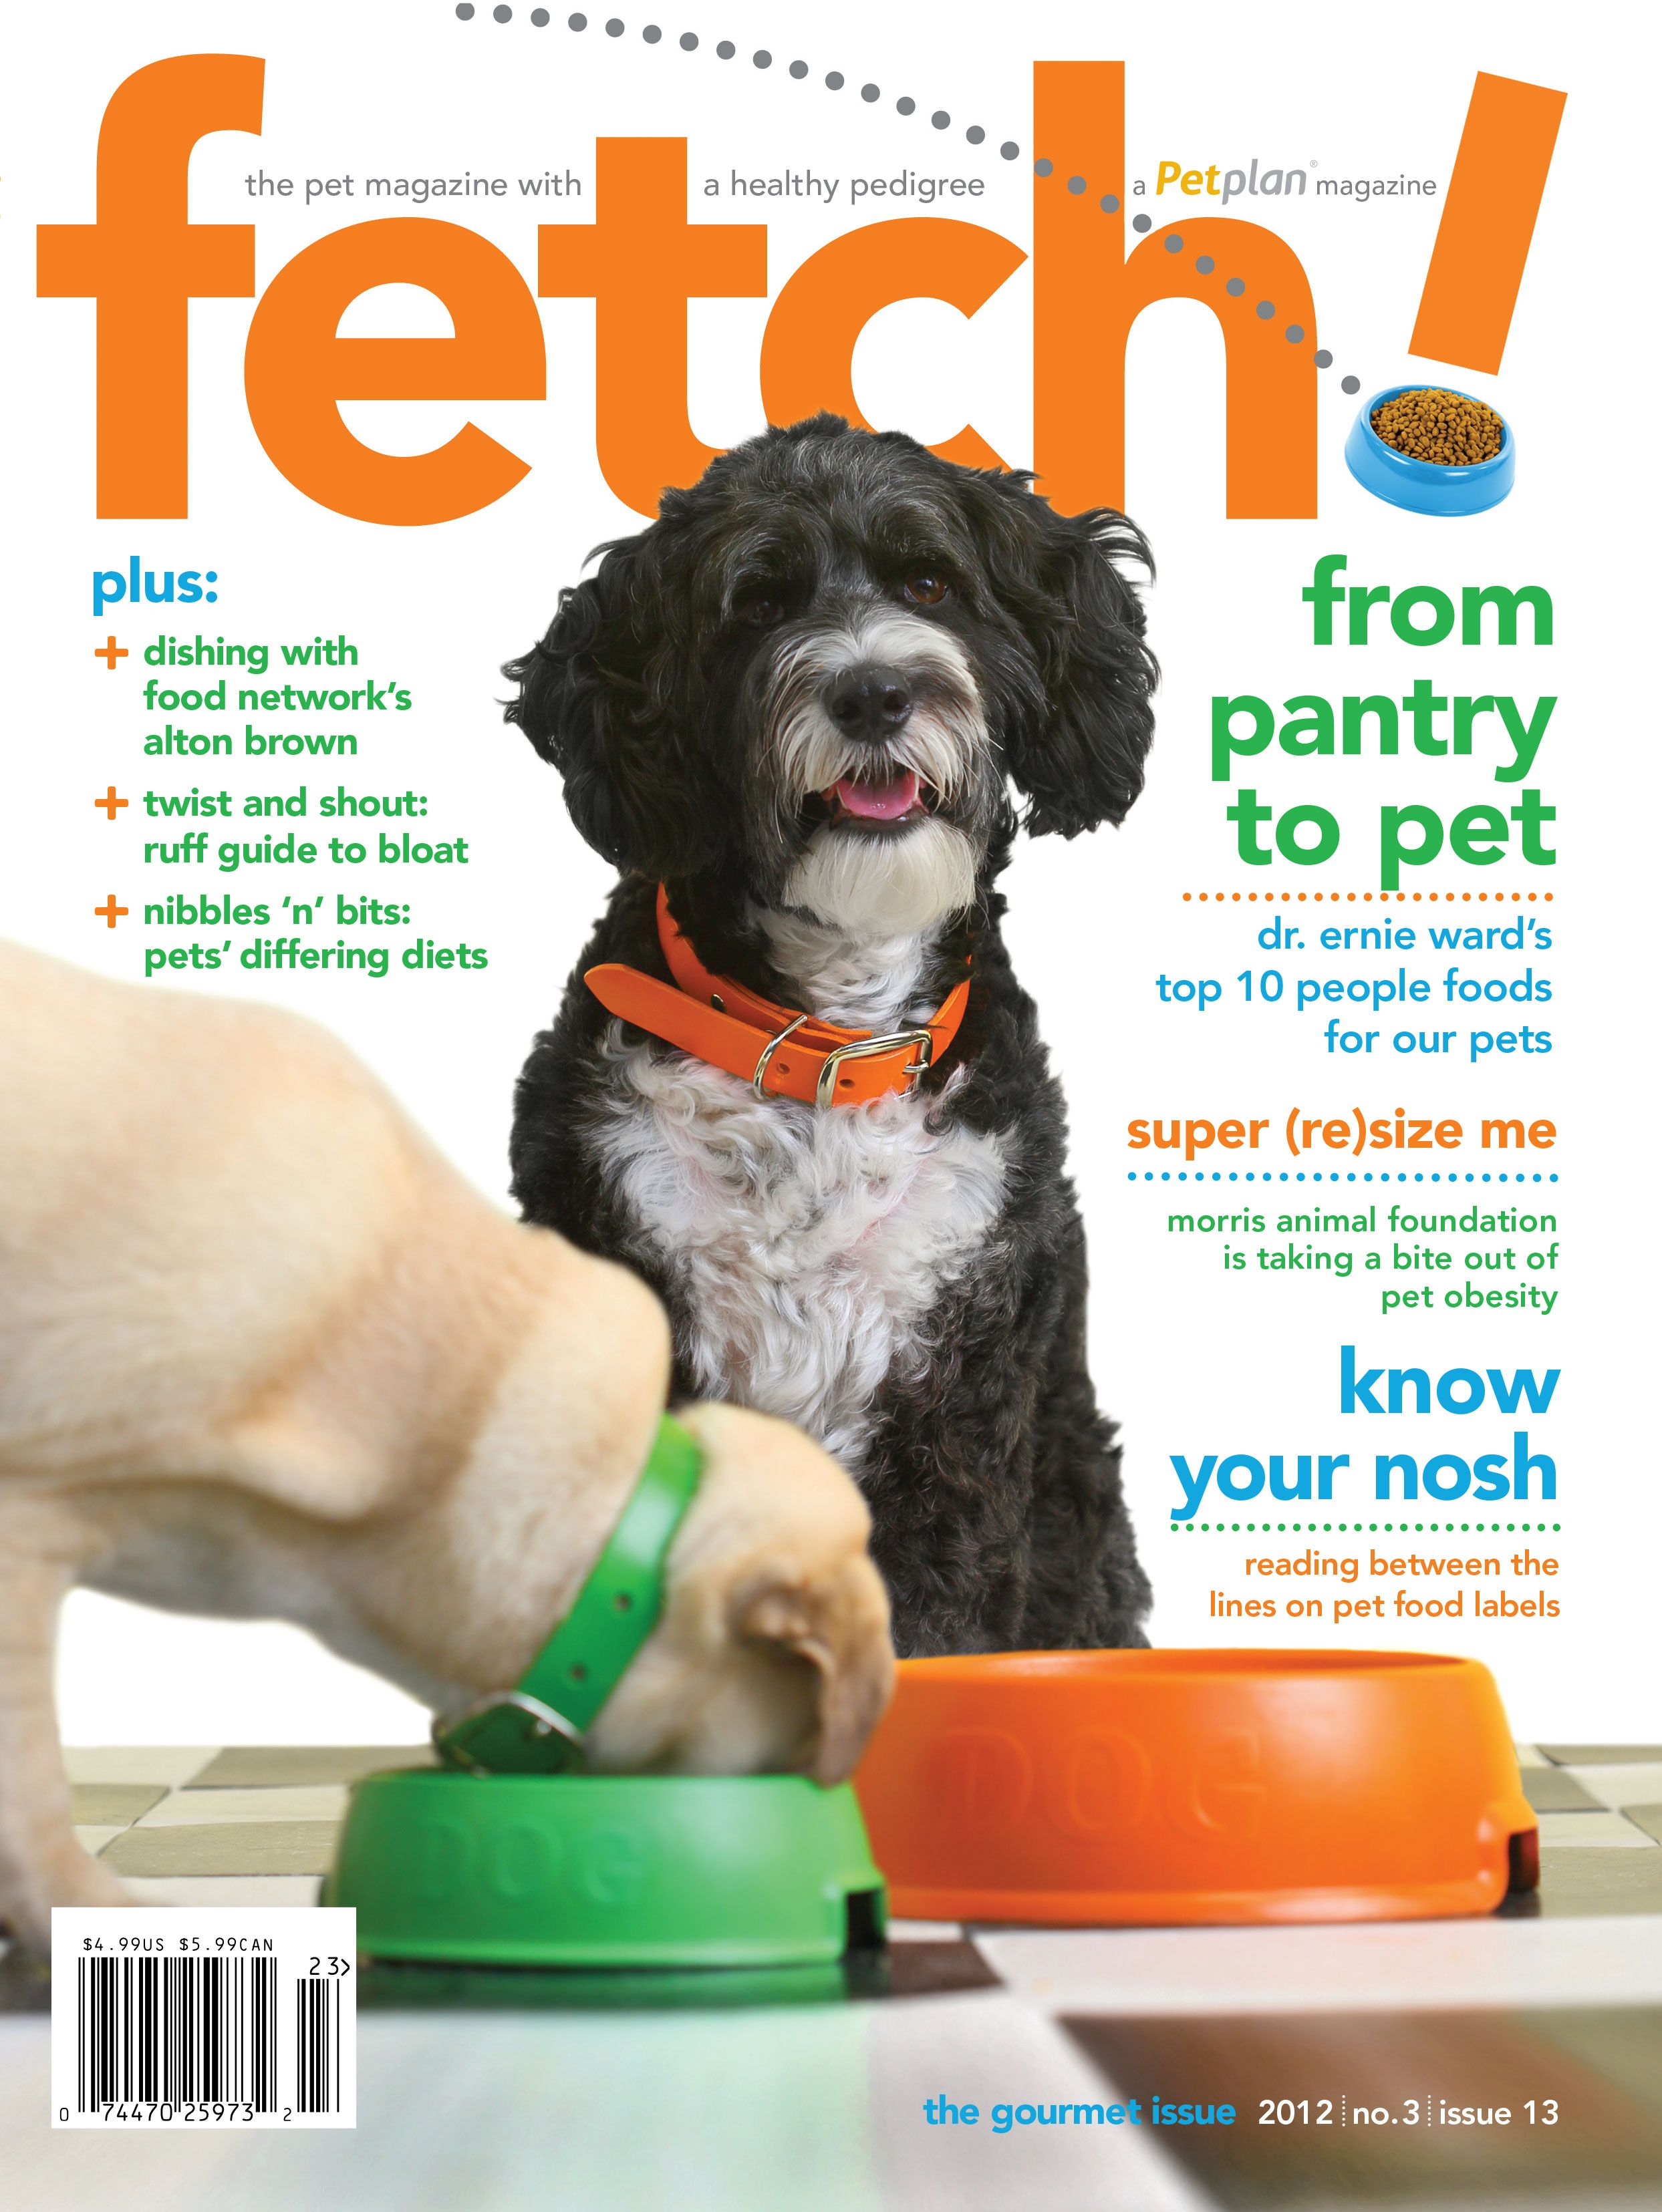 """In the Gourmet issue of fetch! magazine, Petplan #pet-insurance serves up a heaping helping of vet-authored pet health tips, as well as an interview with Food Network star Alton Brown! Read on to find tips on understanding pet food labels, learning the signs of bloat, and feeding Dr. Ernie Ward's Top 10 """"superfoods"""" for pets!"""